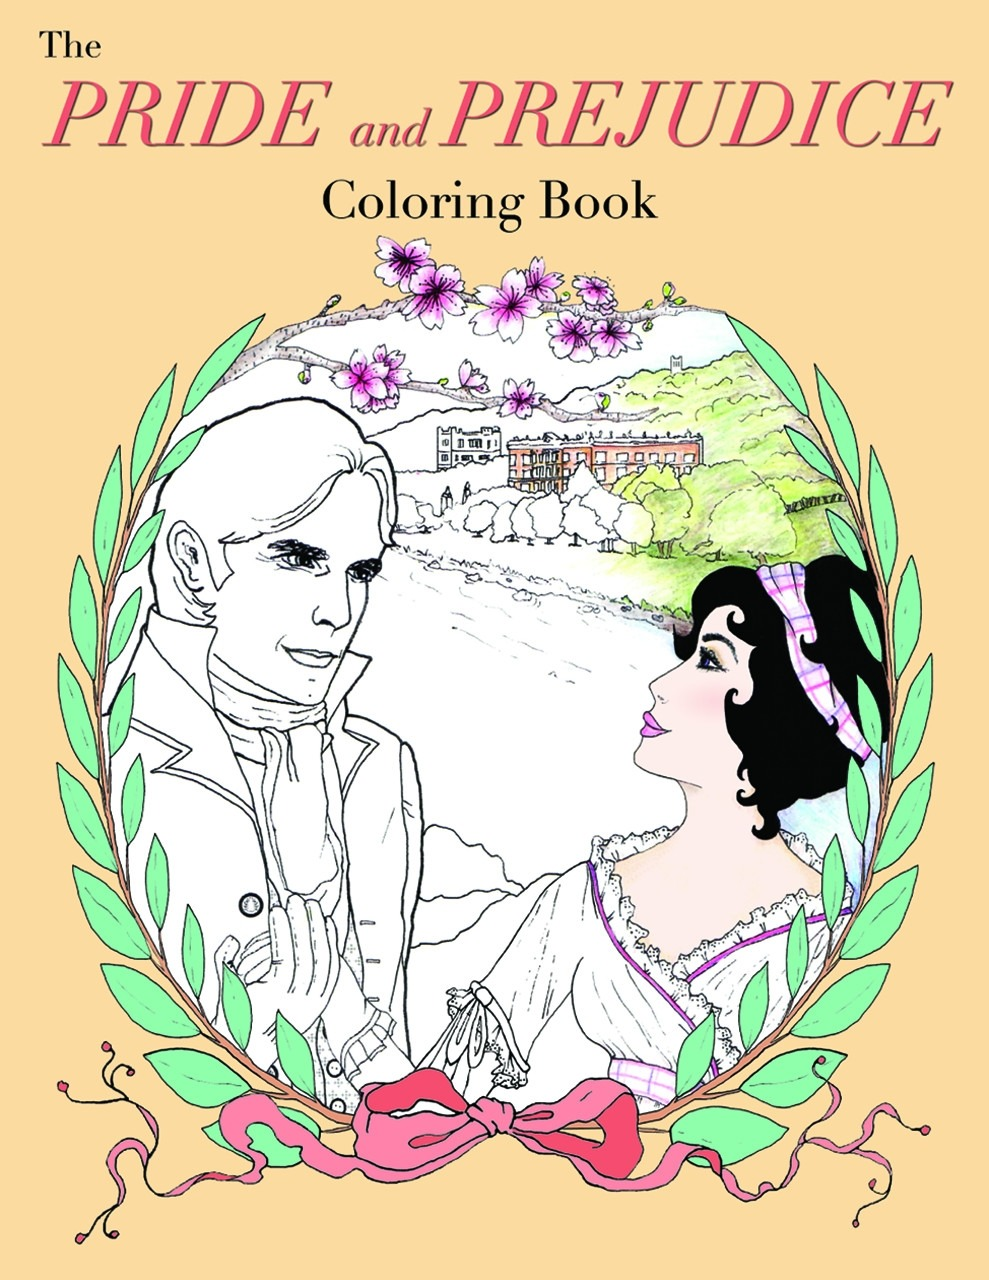 Review Of The Pride And Prejudice Coloring Book (9780937609804